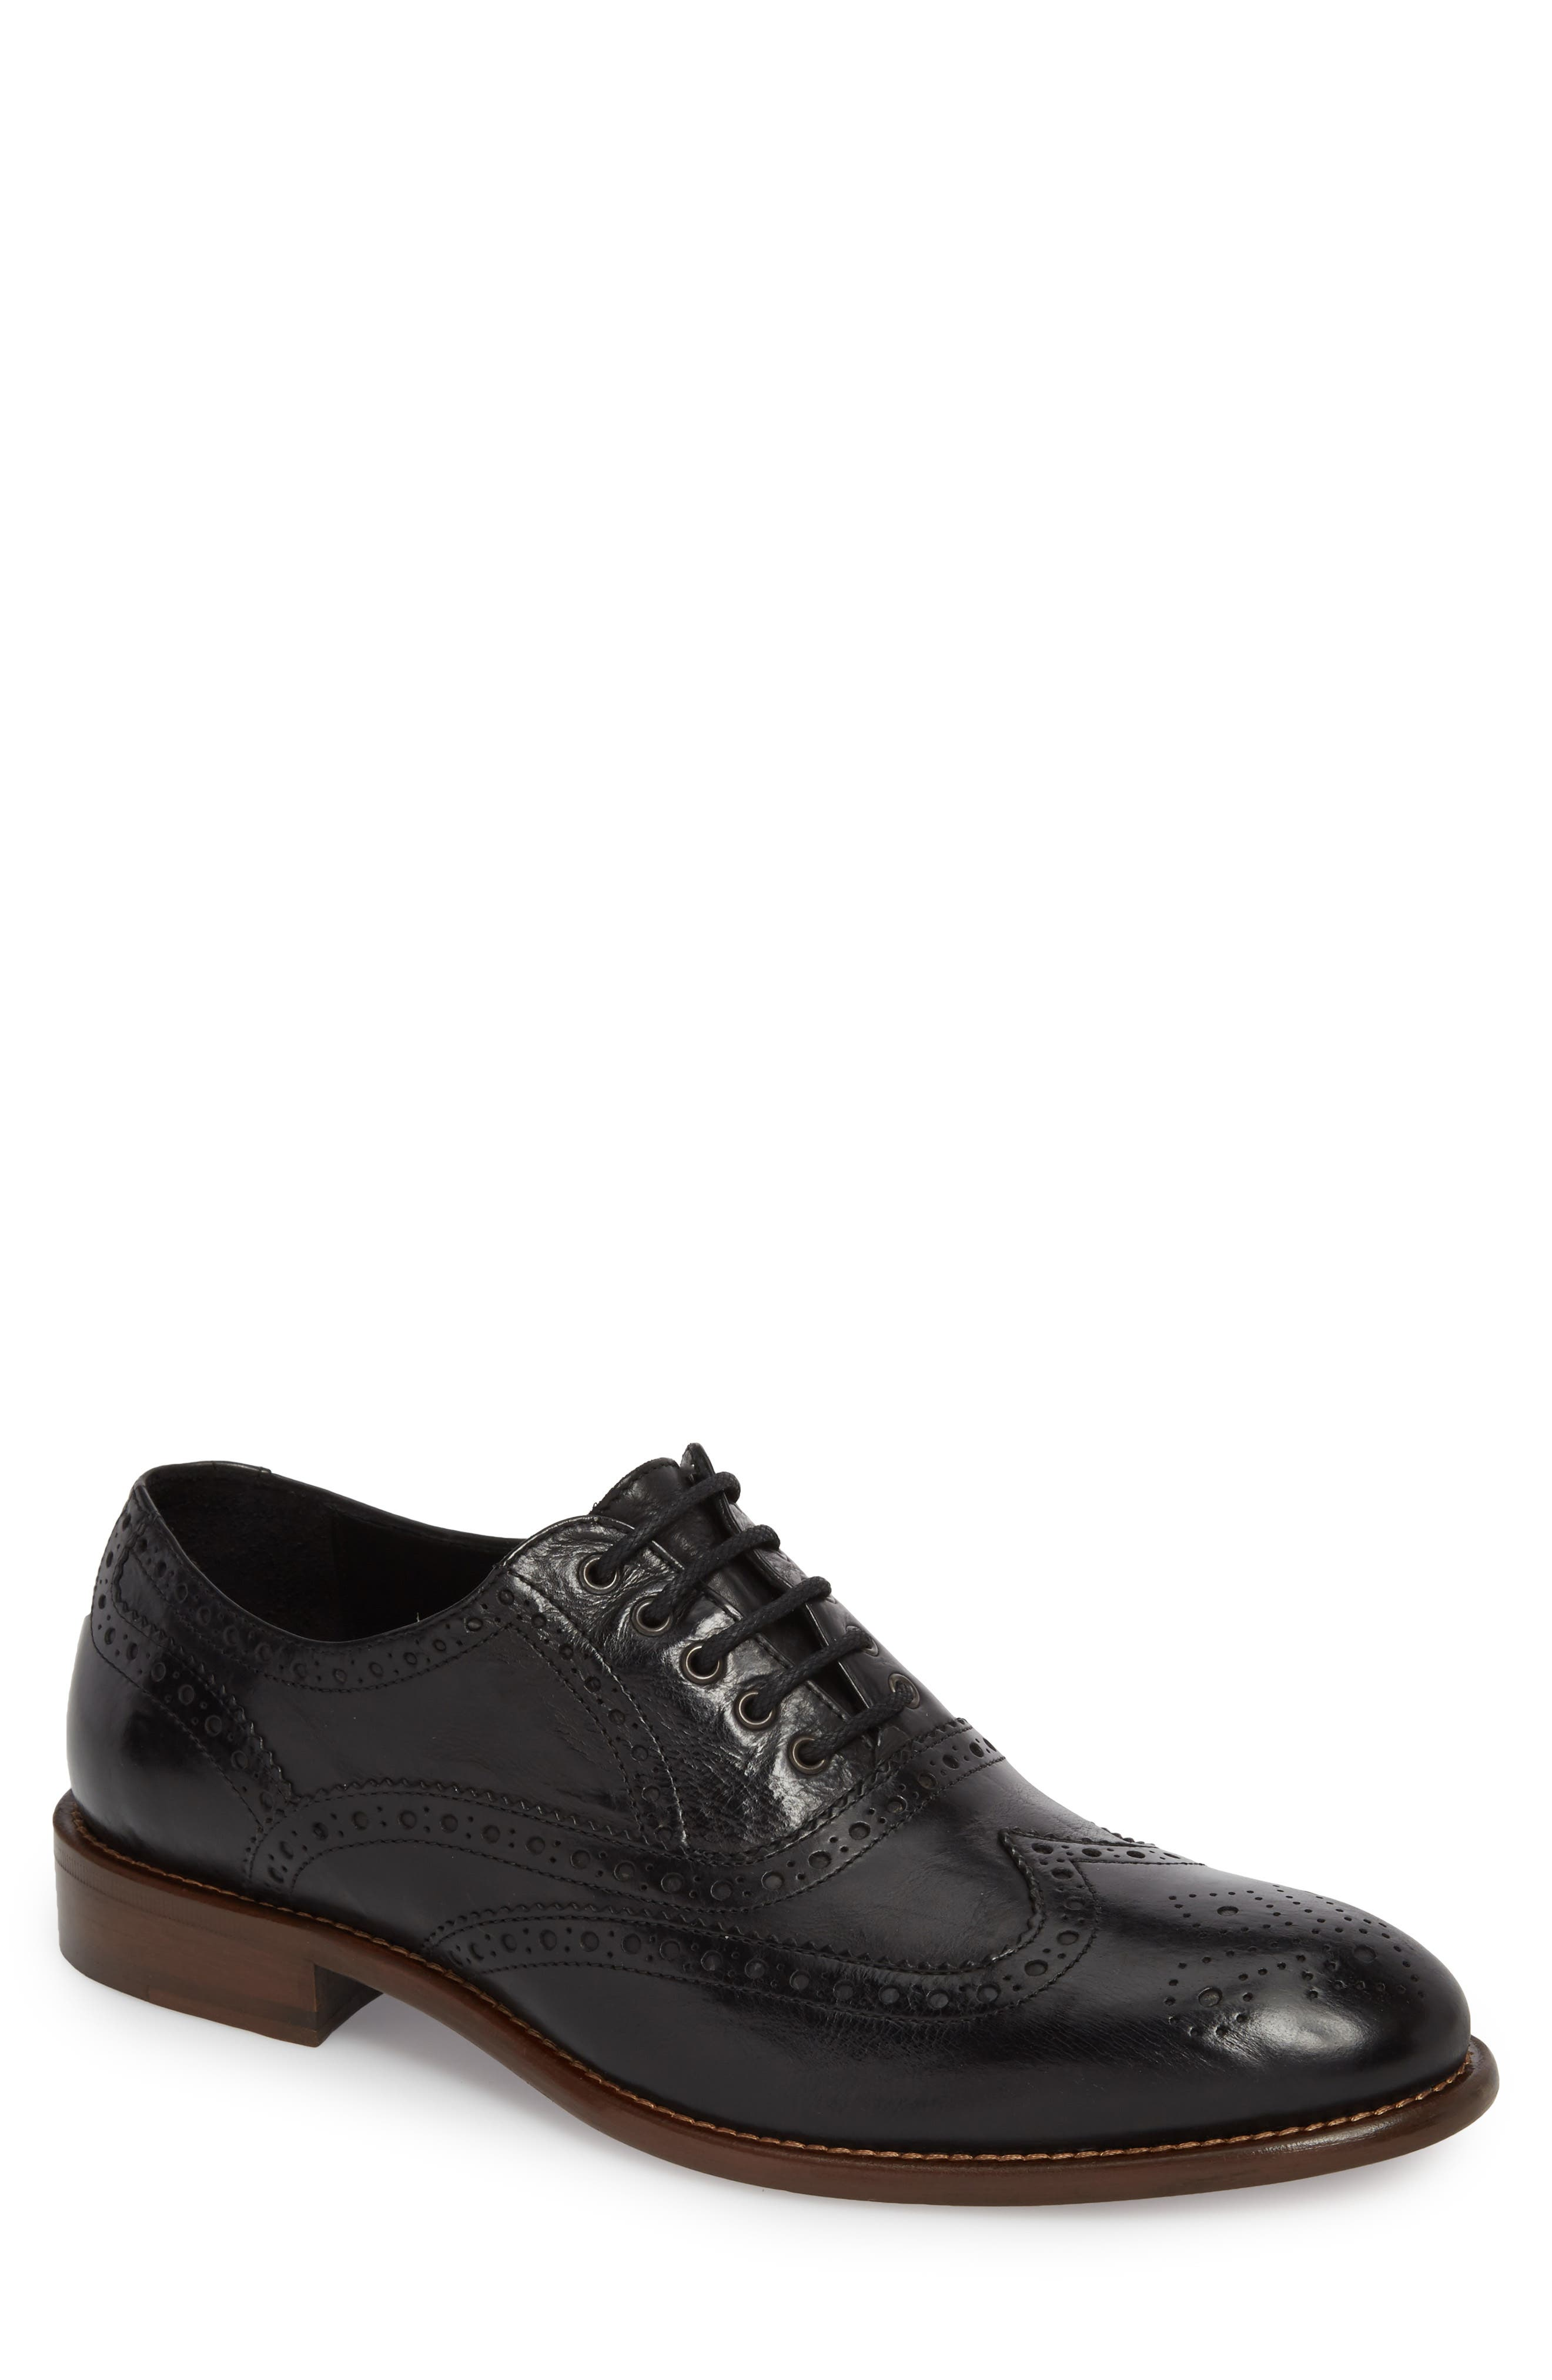 Bryson Wingtip Oxford,                             Main thumbnail 1, color,                             BLACK LEATHER